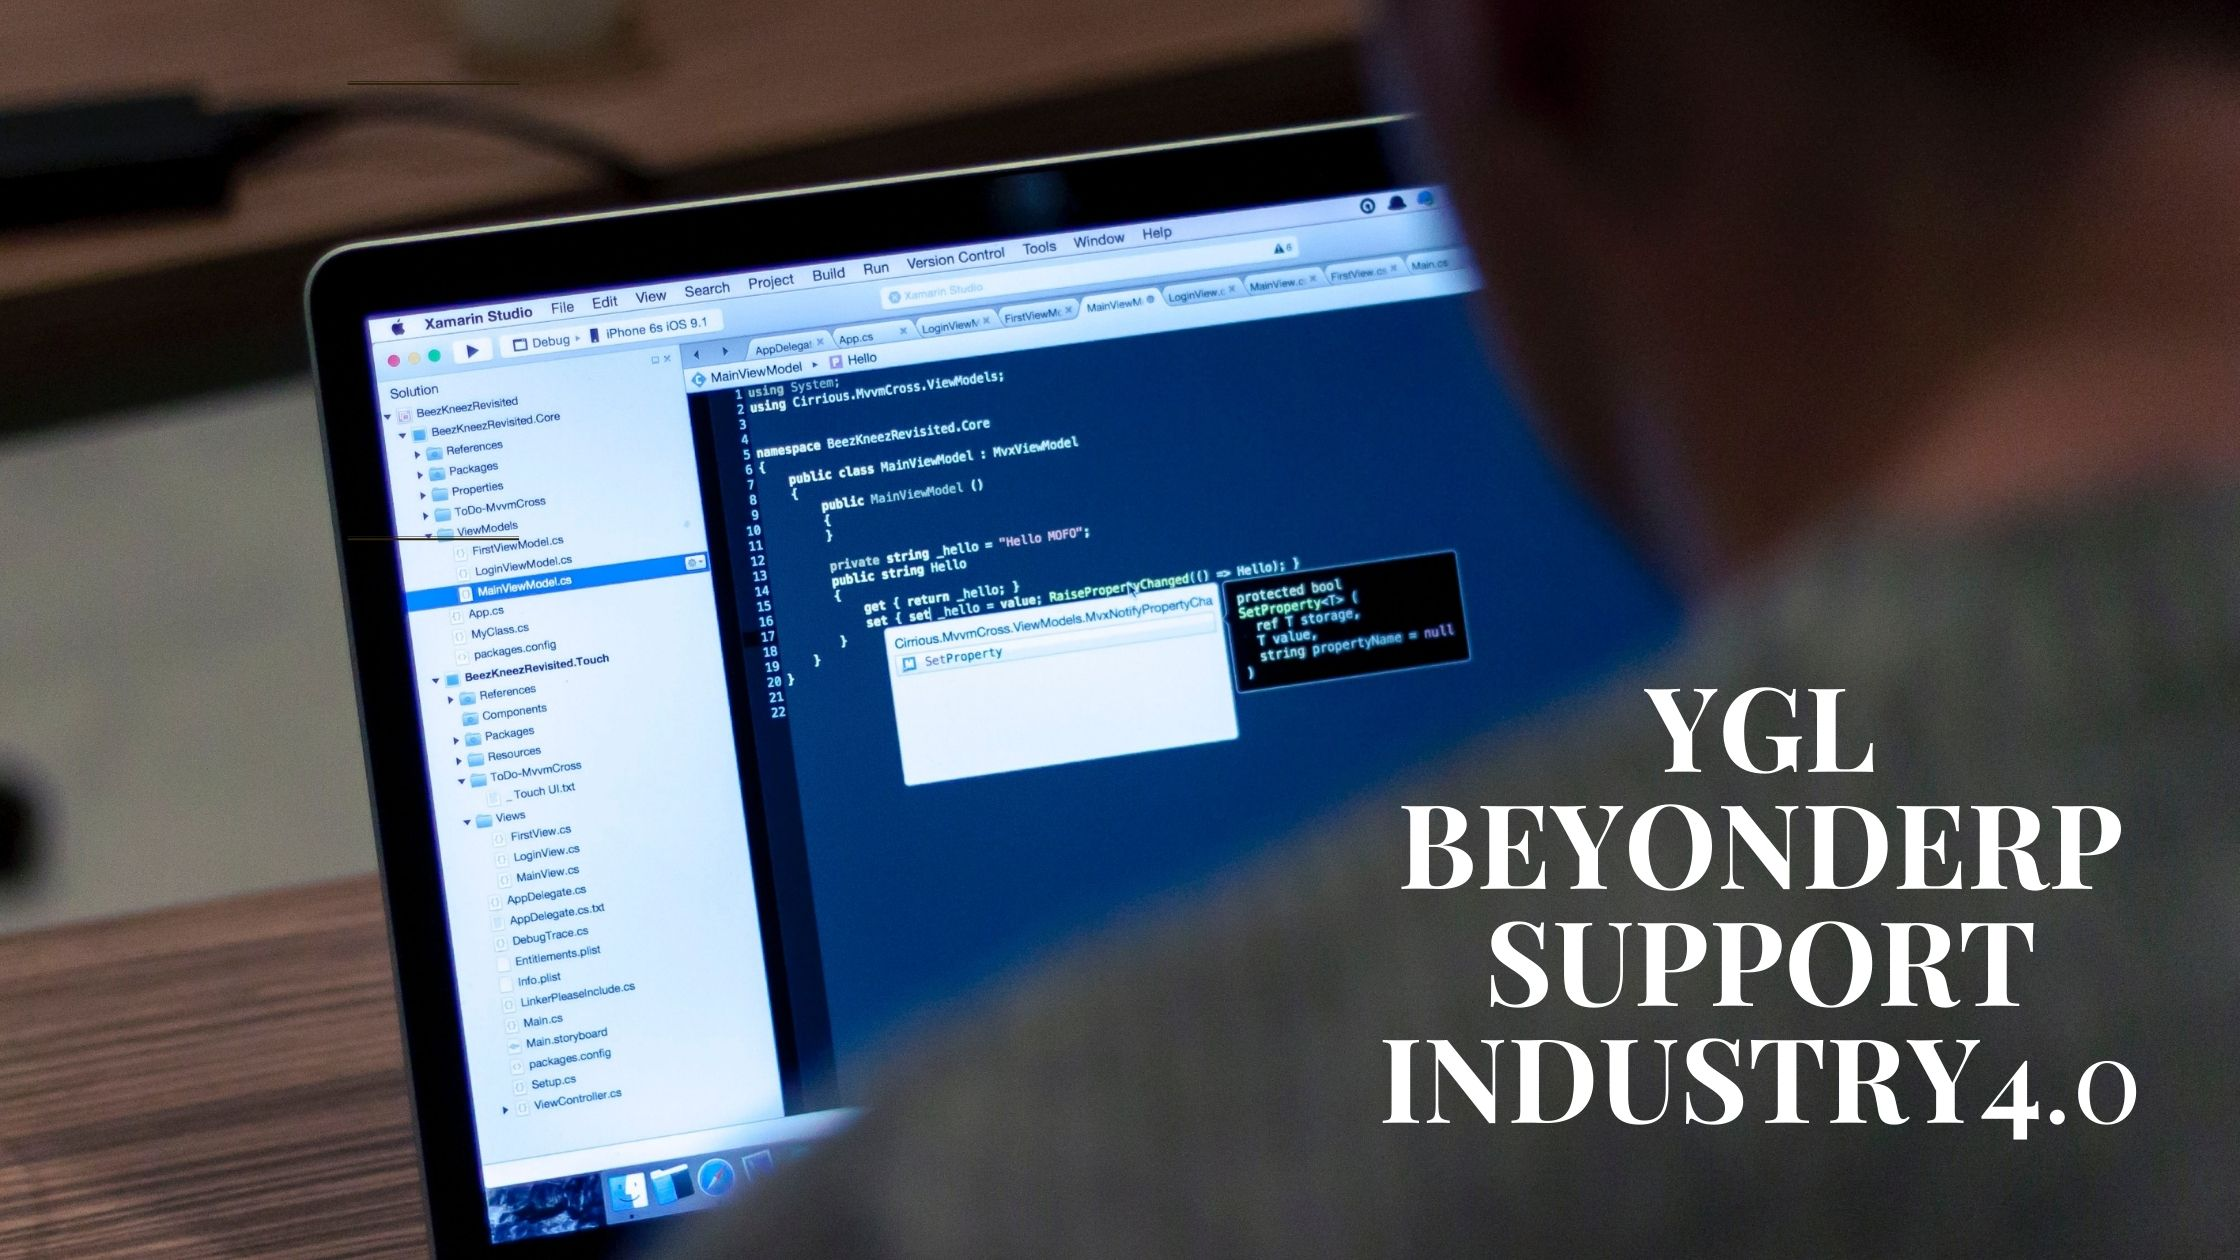 BeyondERP supports Industry4.0